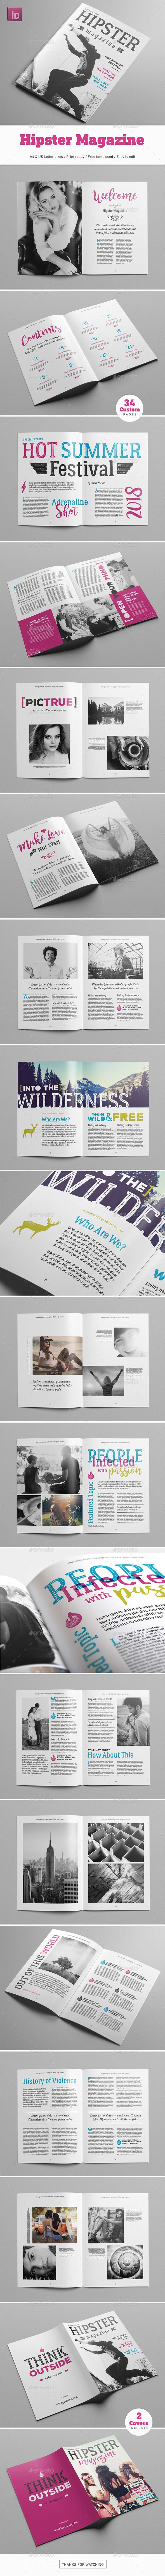 Hipster Magazine — InDesign INDD #clothing #lookbook • Download ➝ https://graphicriver.net/item/hipster-magazine/20151838?ref=pxcr